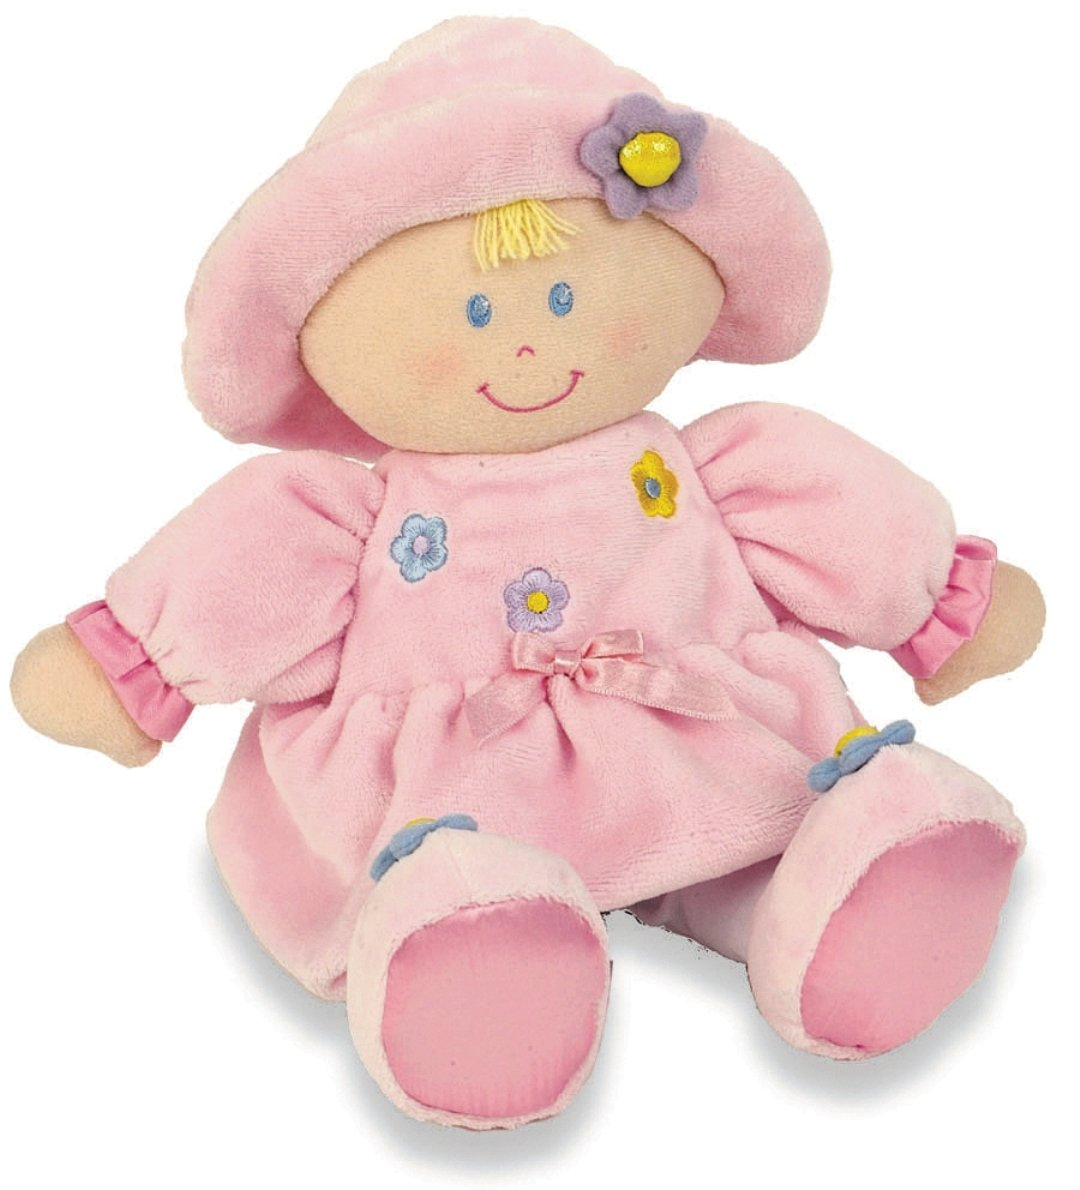 Baby Dolls: Kira Doll by Kids Preferred